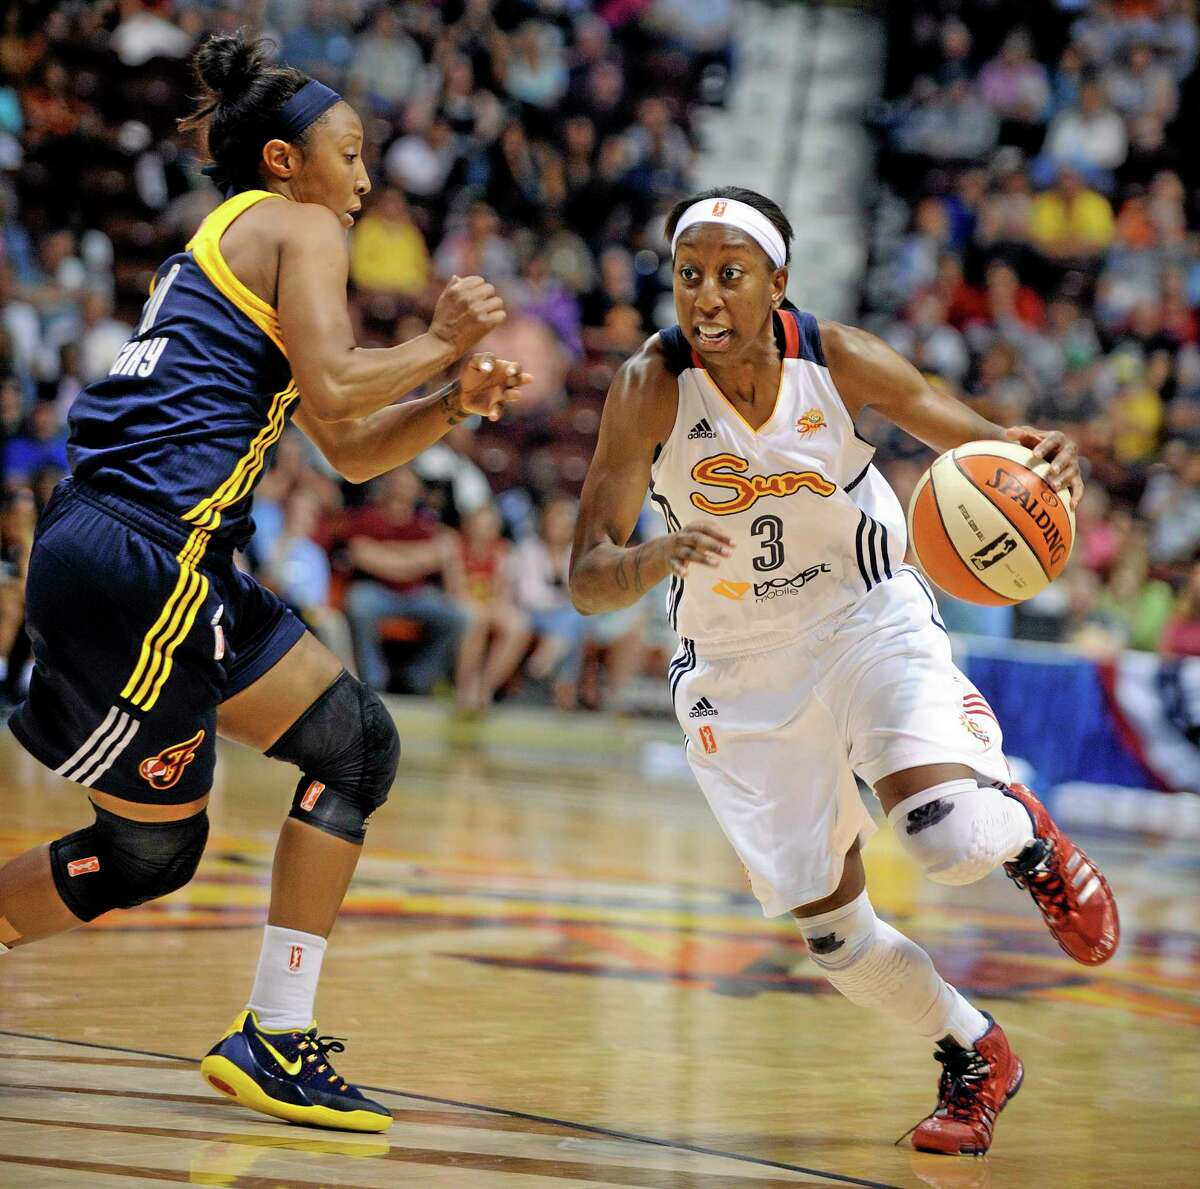 The Connecticut Sun's Allison Hightowerm right, drives past the Fever's Briann January during Saturday's game.